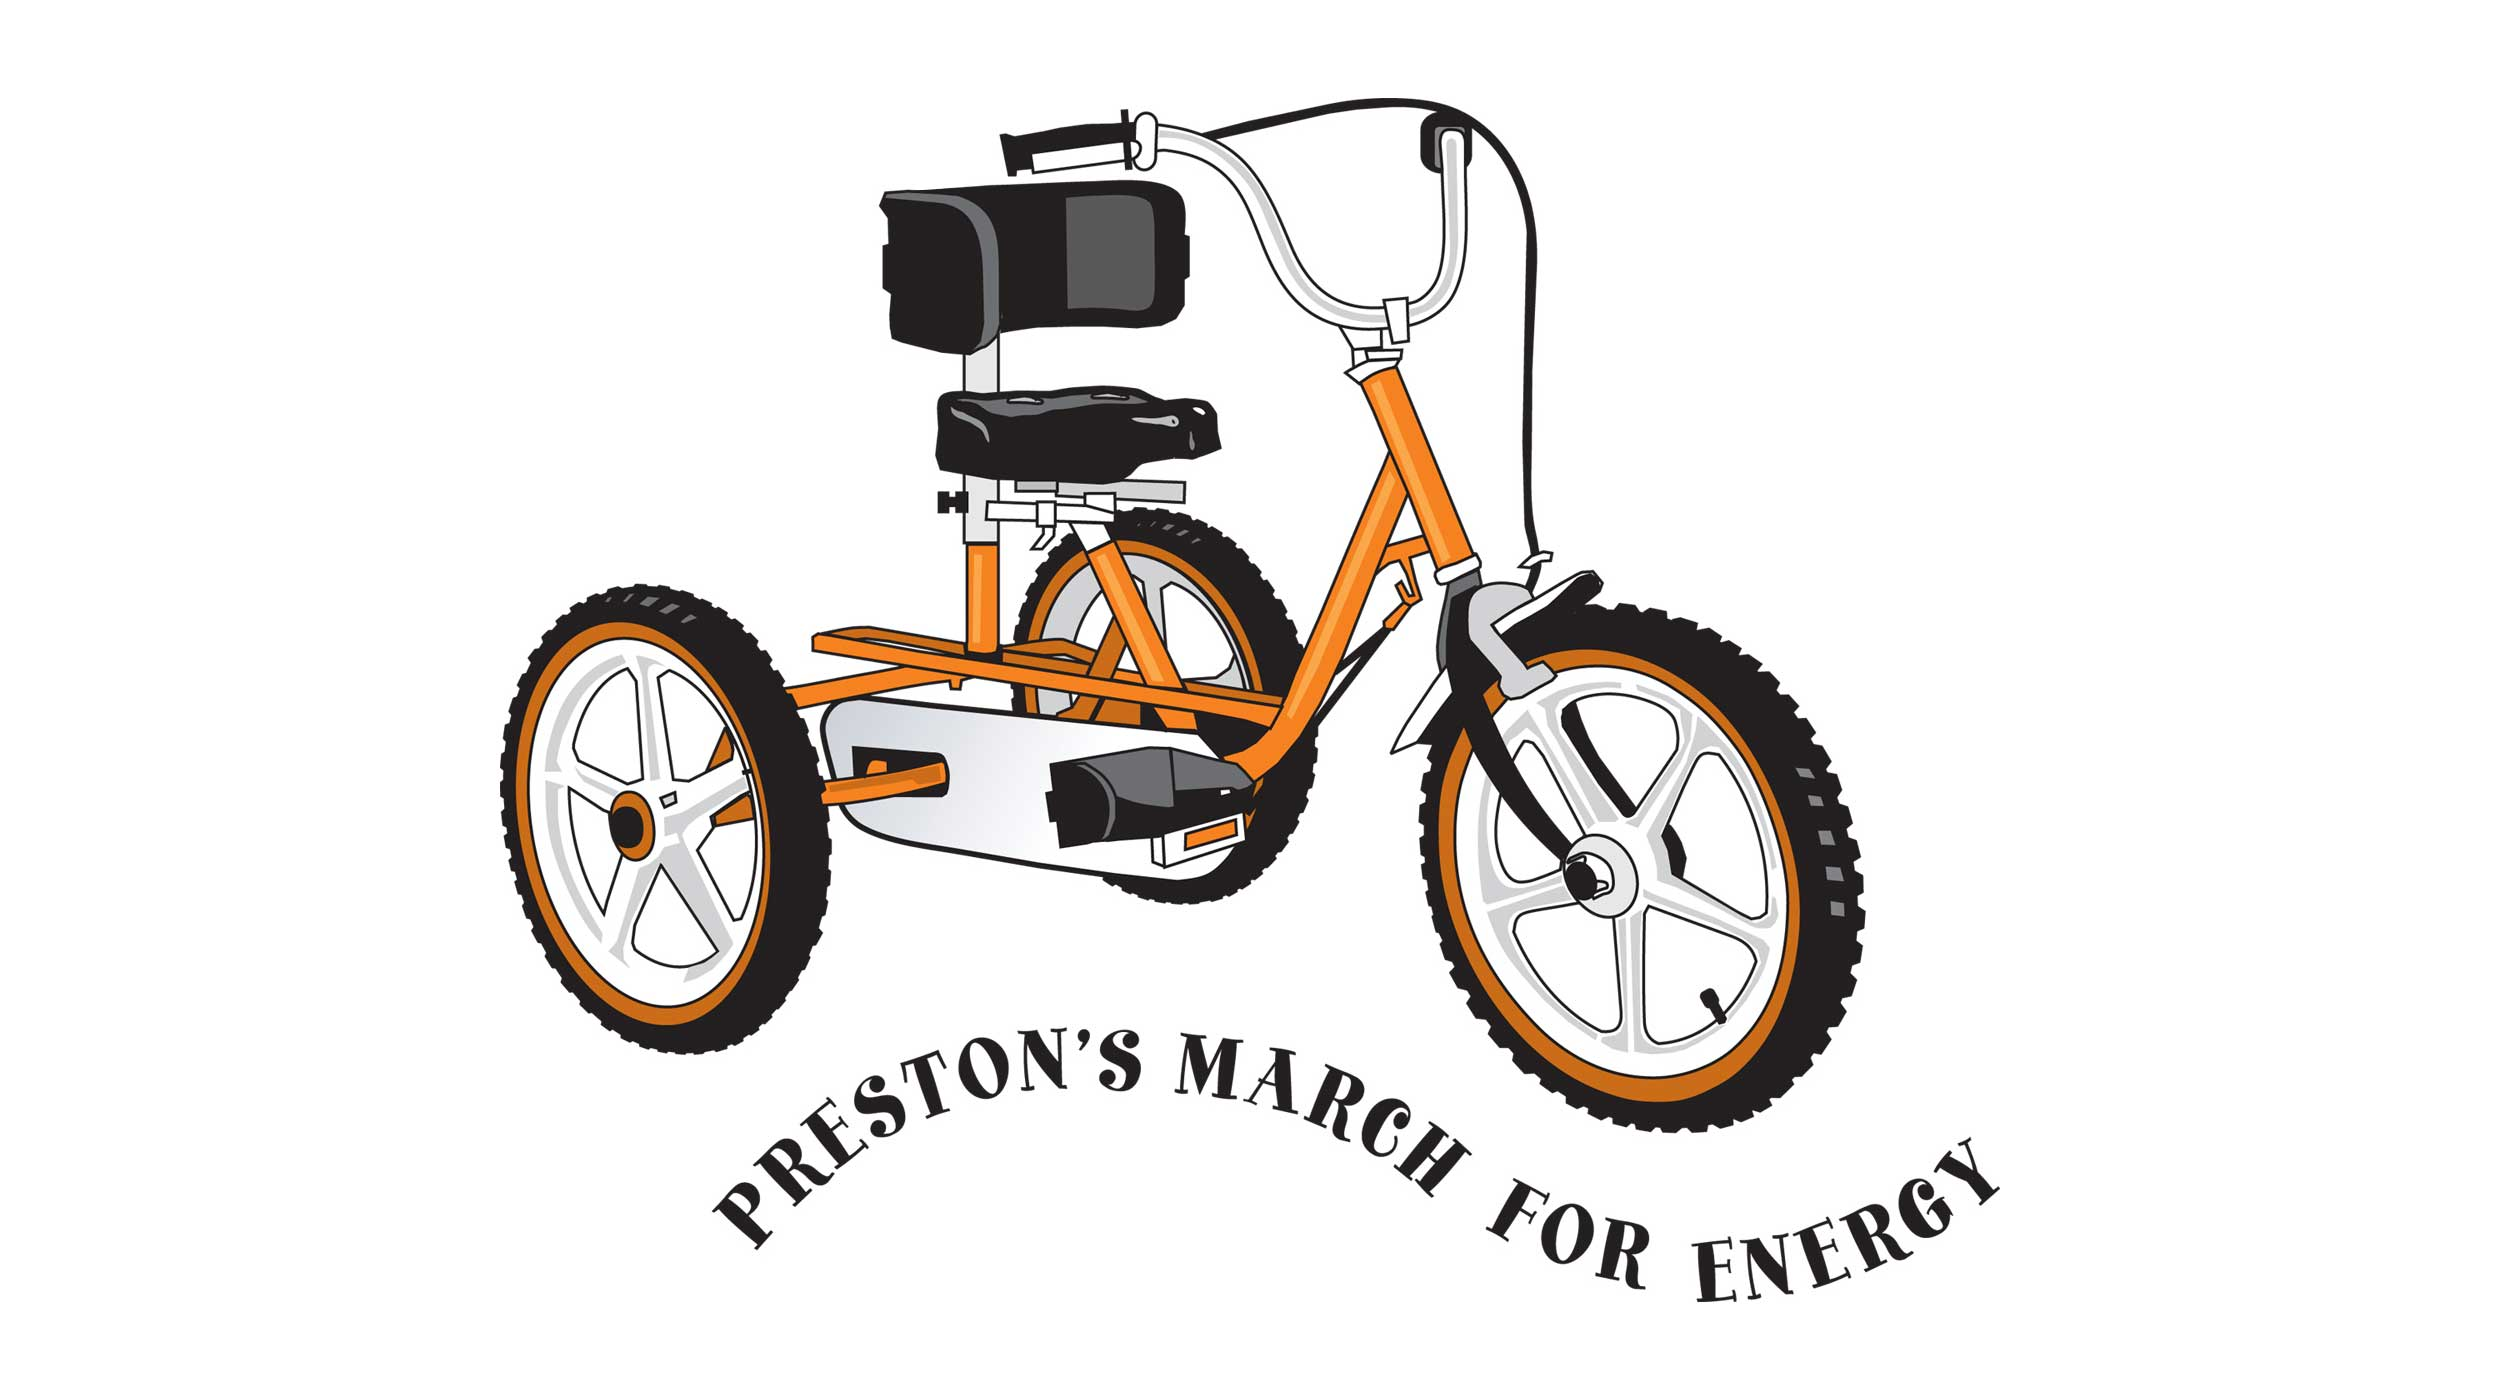 Nominee Preston's March For Energy